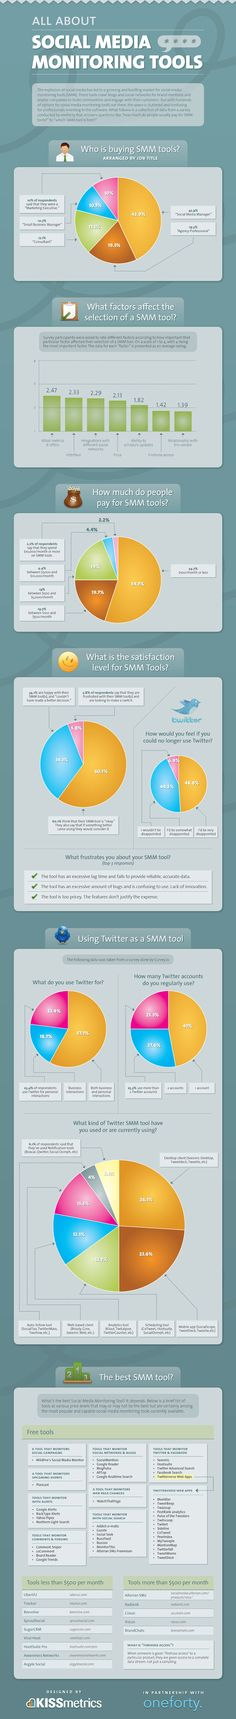 All about Social Media monitoring tools.